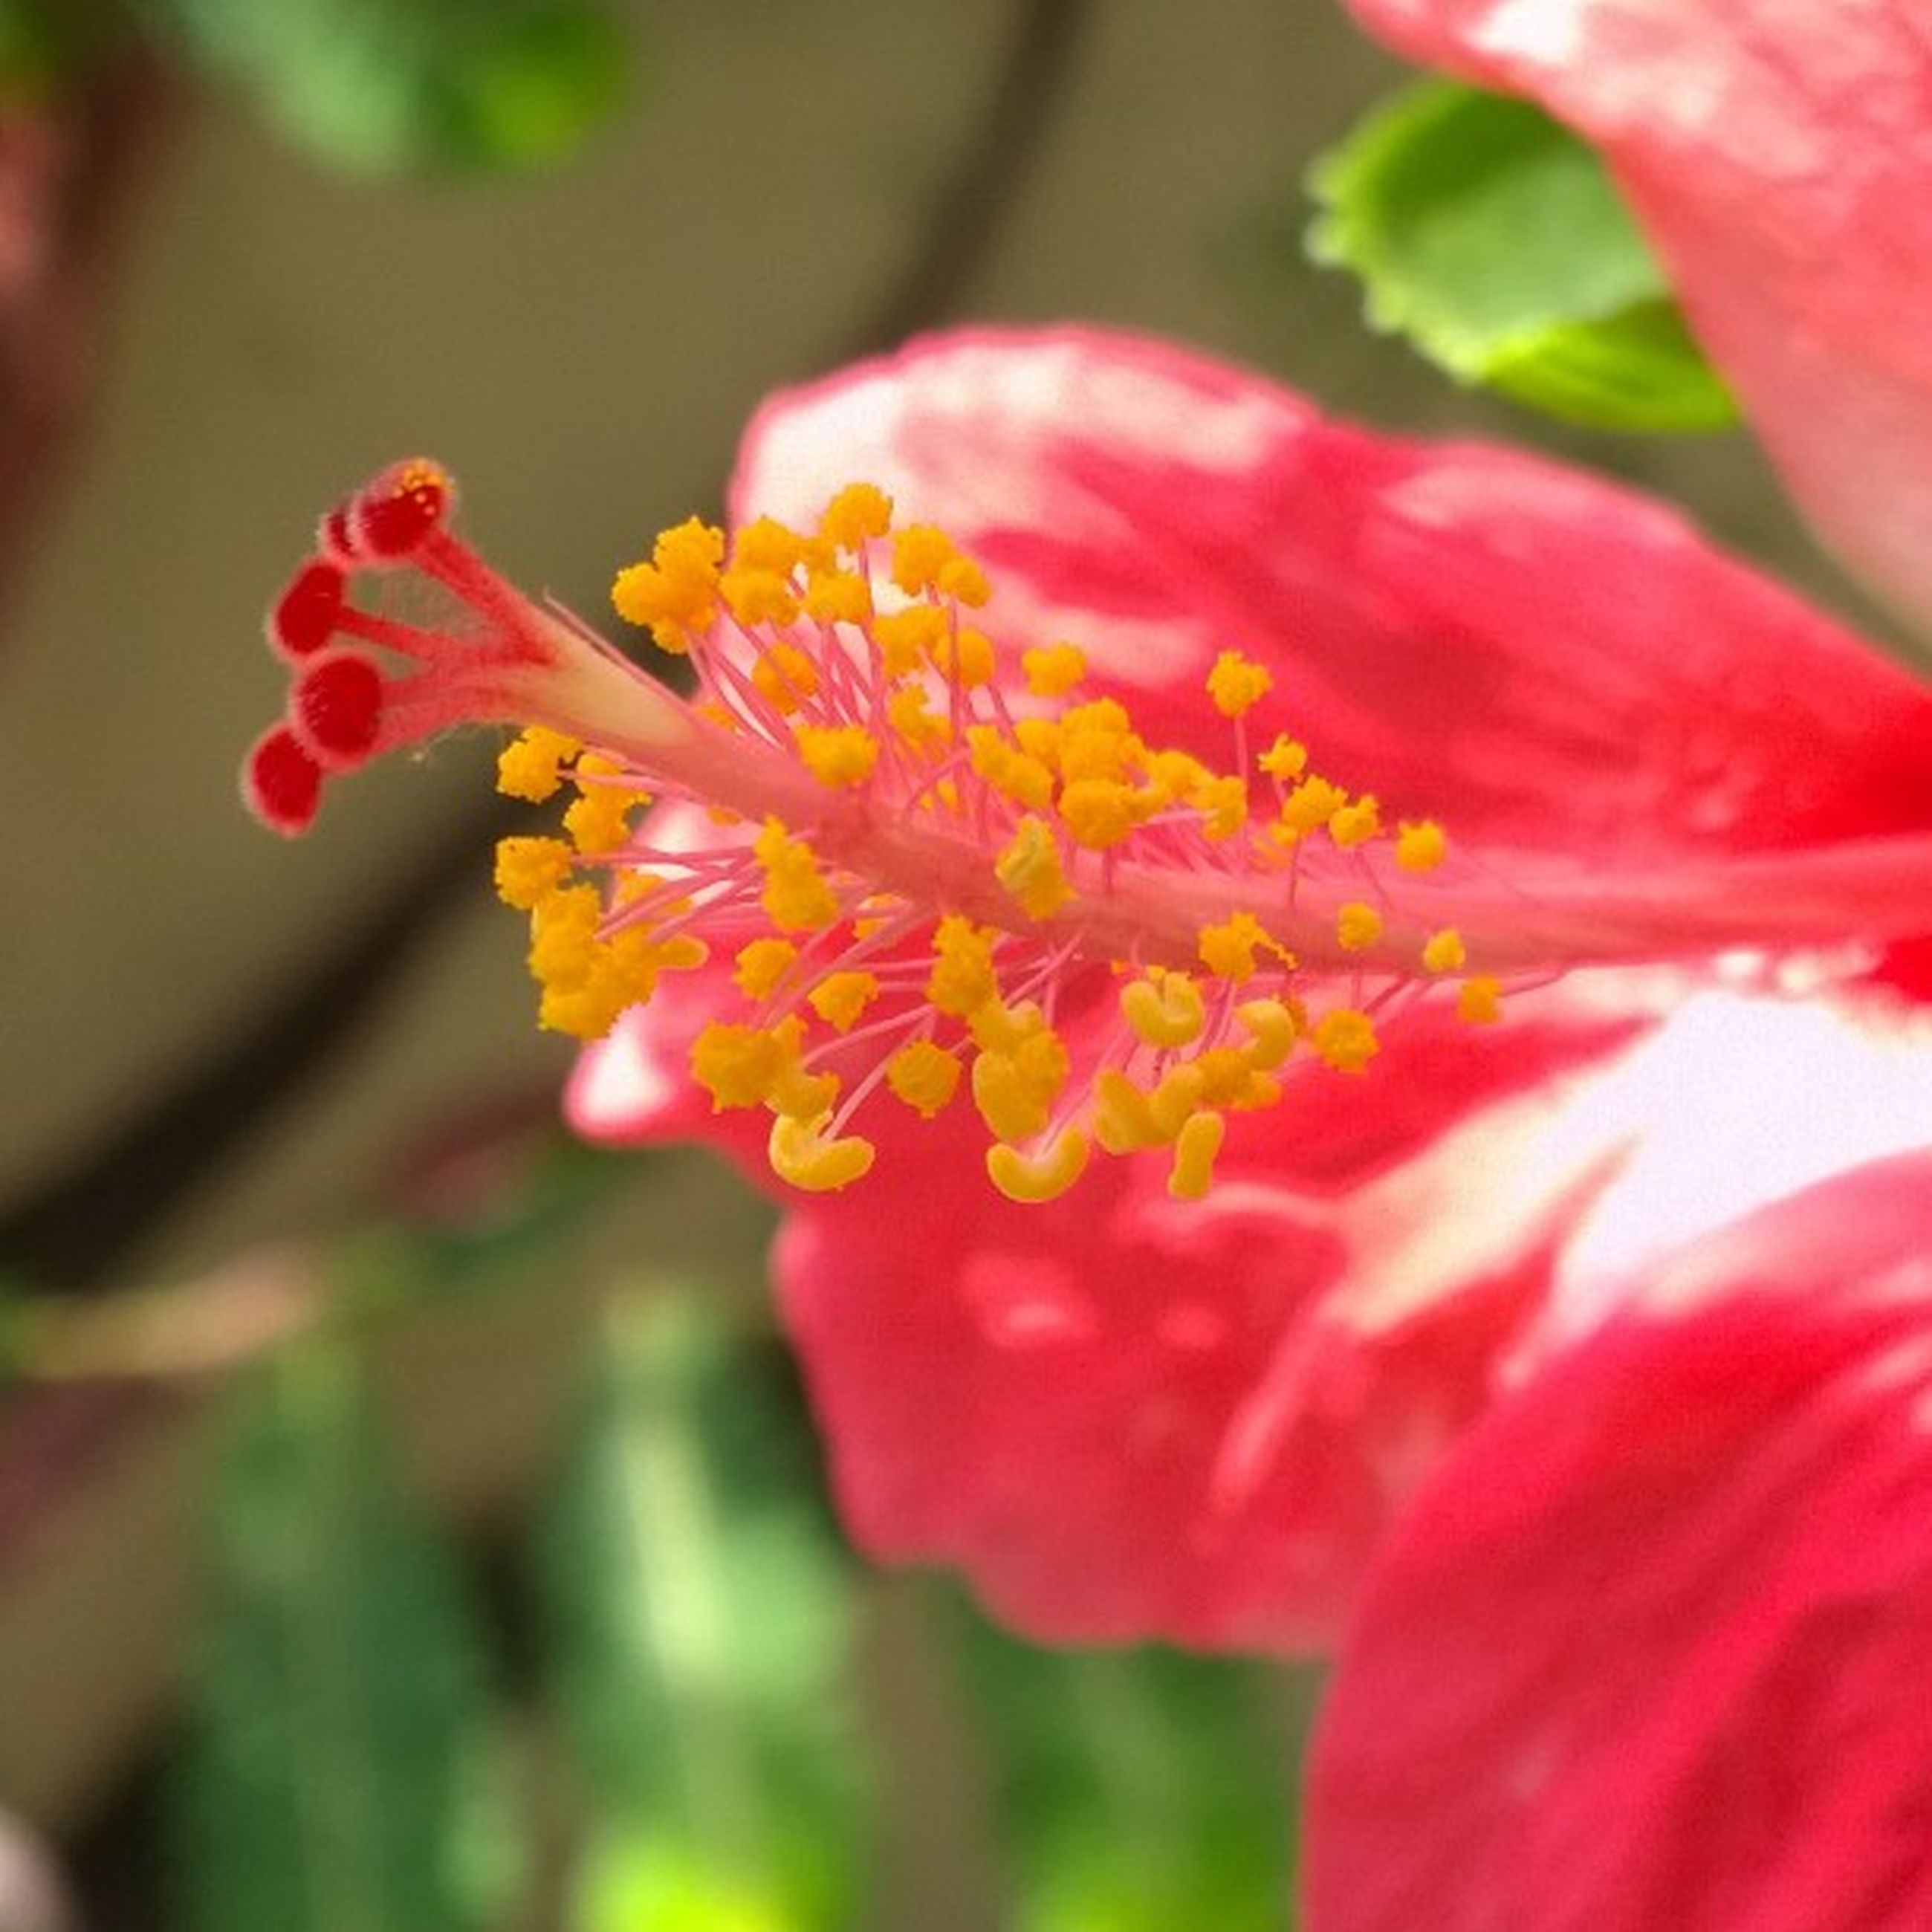 flower, petal, freshness, flower head, fragility, red, beauty in nature, growth, close-up, blooming, pollen, focus on foreground, nature, stamen, single flower, in bloom, selective focus, plant, blossom, pink color